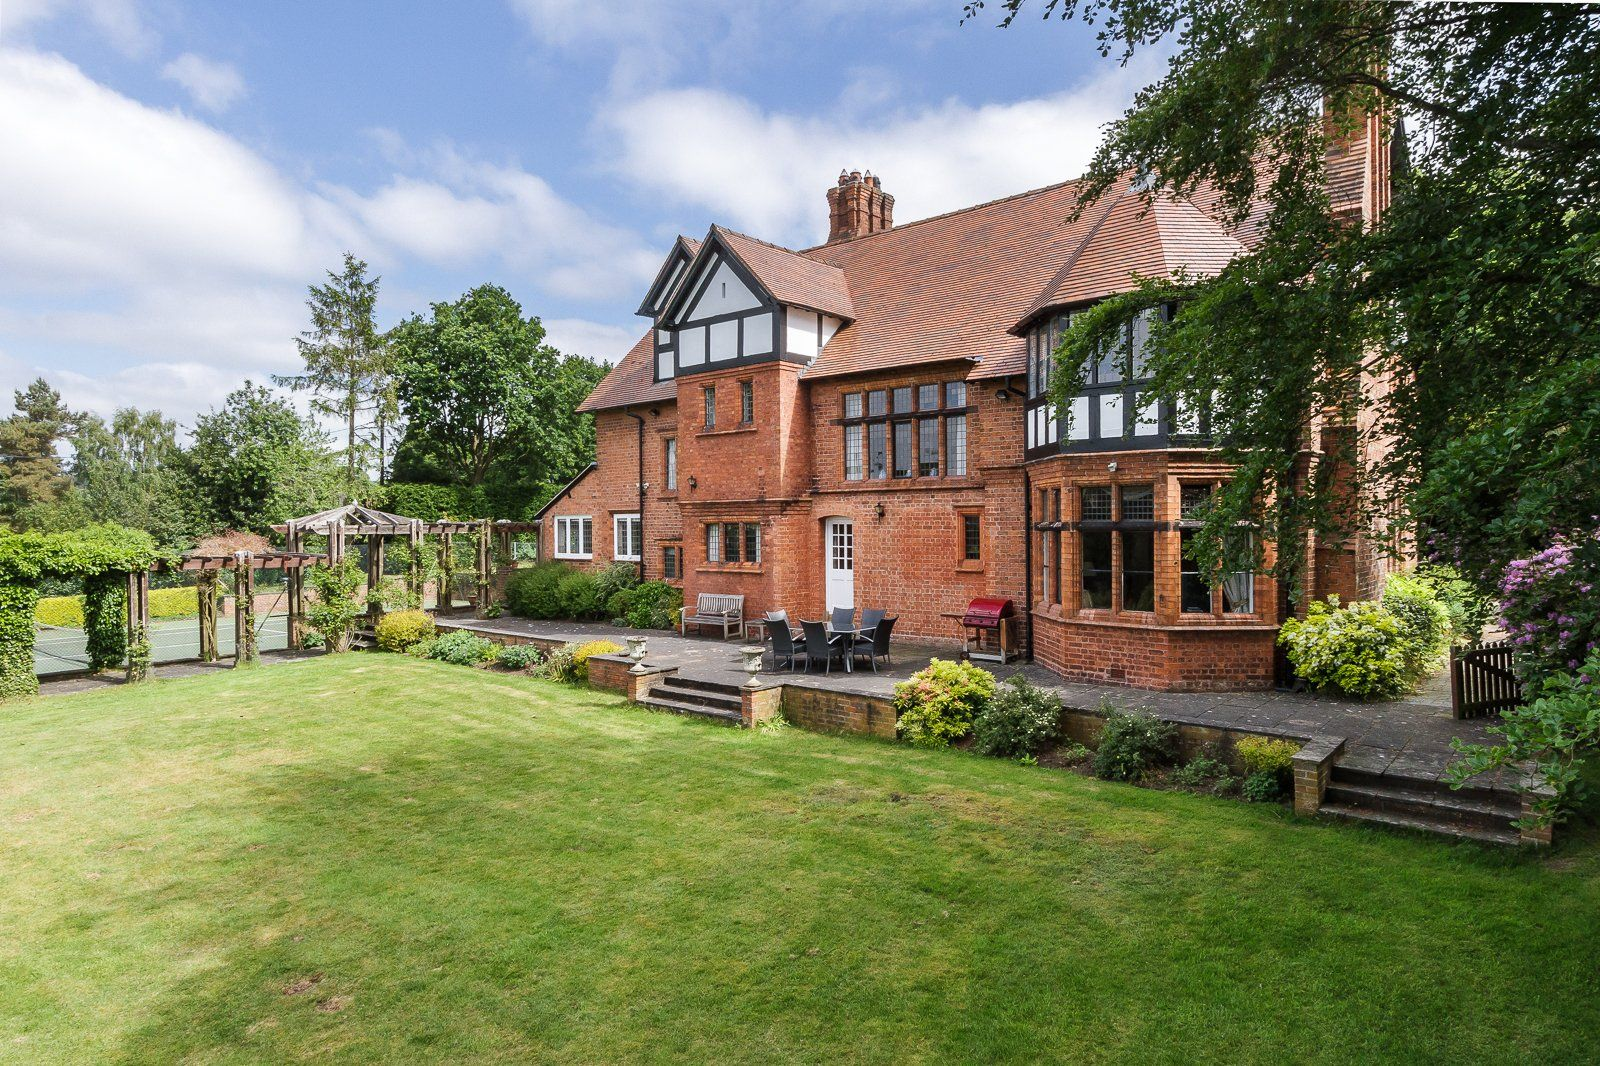 6 bedroom Detached for sale in Whitegate (With images